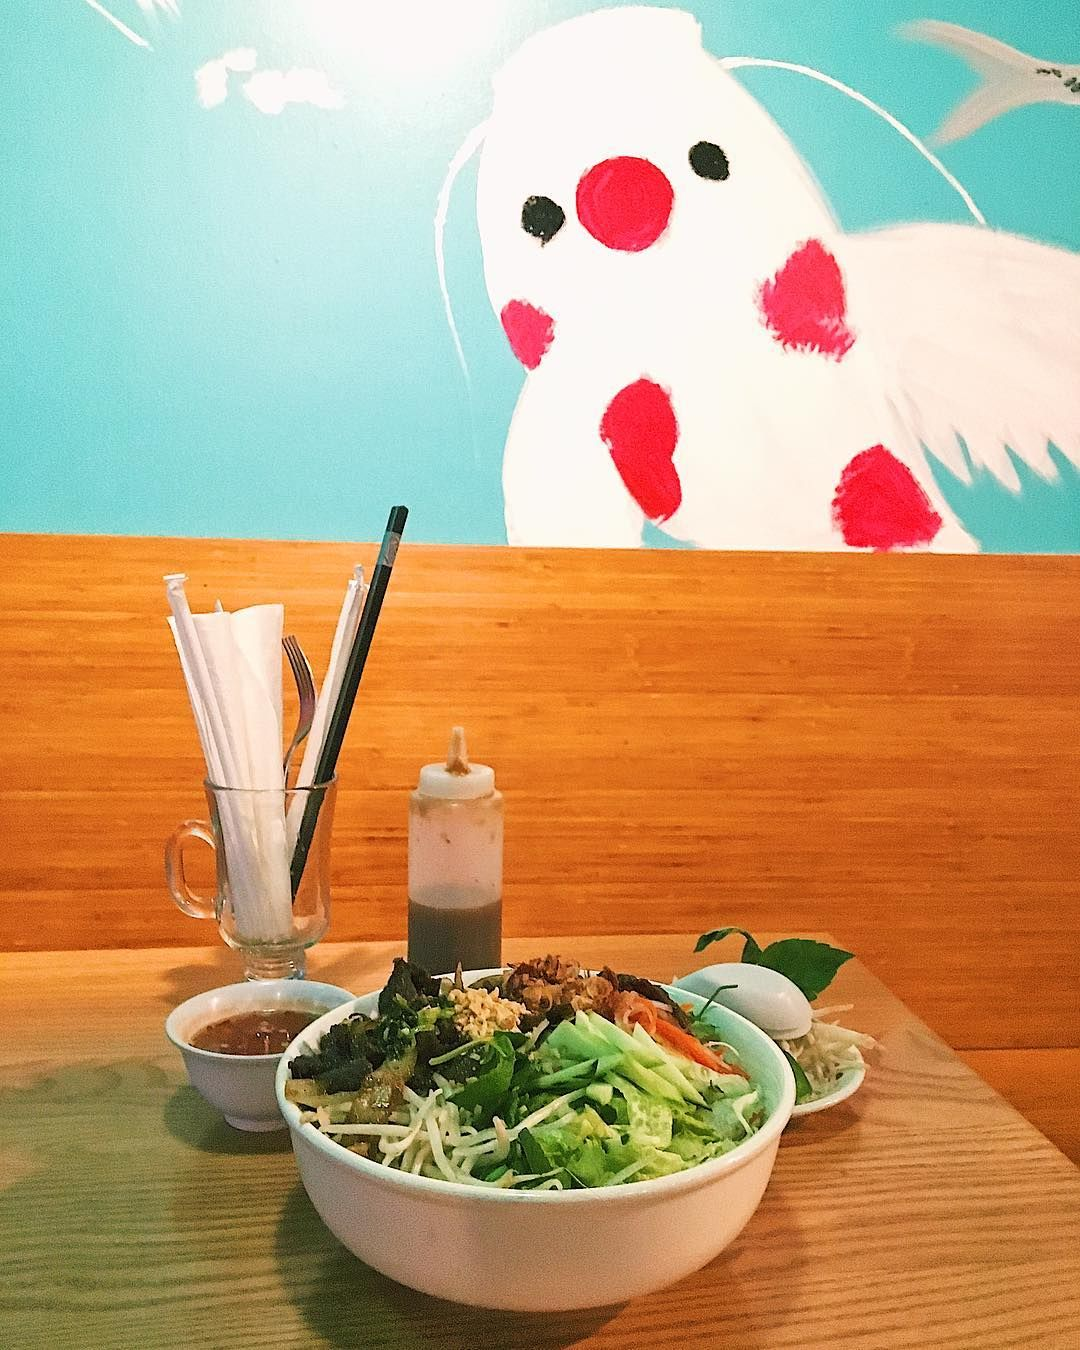 8 Best Places to Eat GlutenFree in Portland Best places